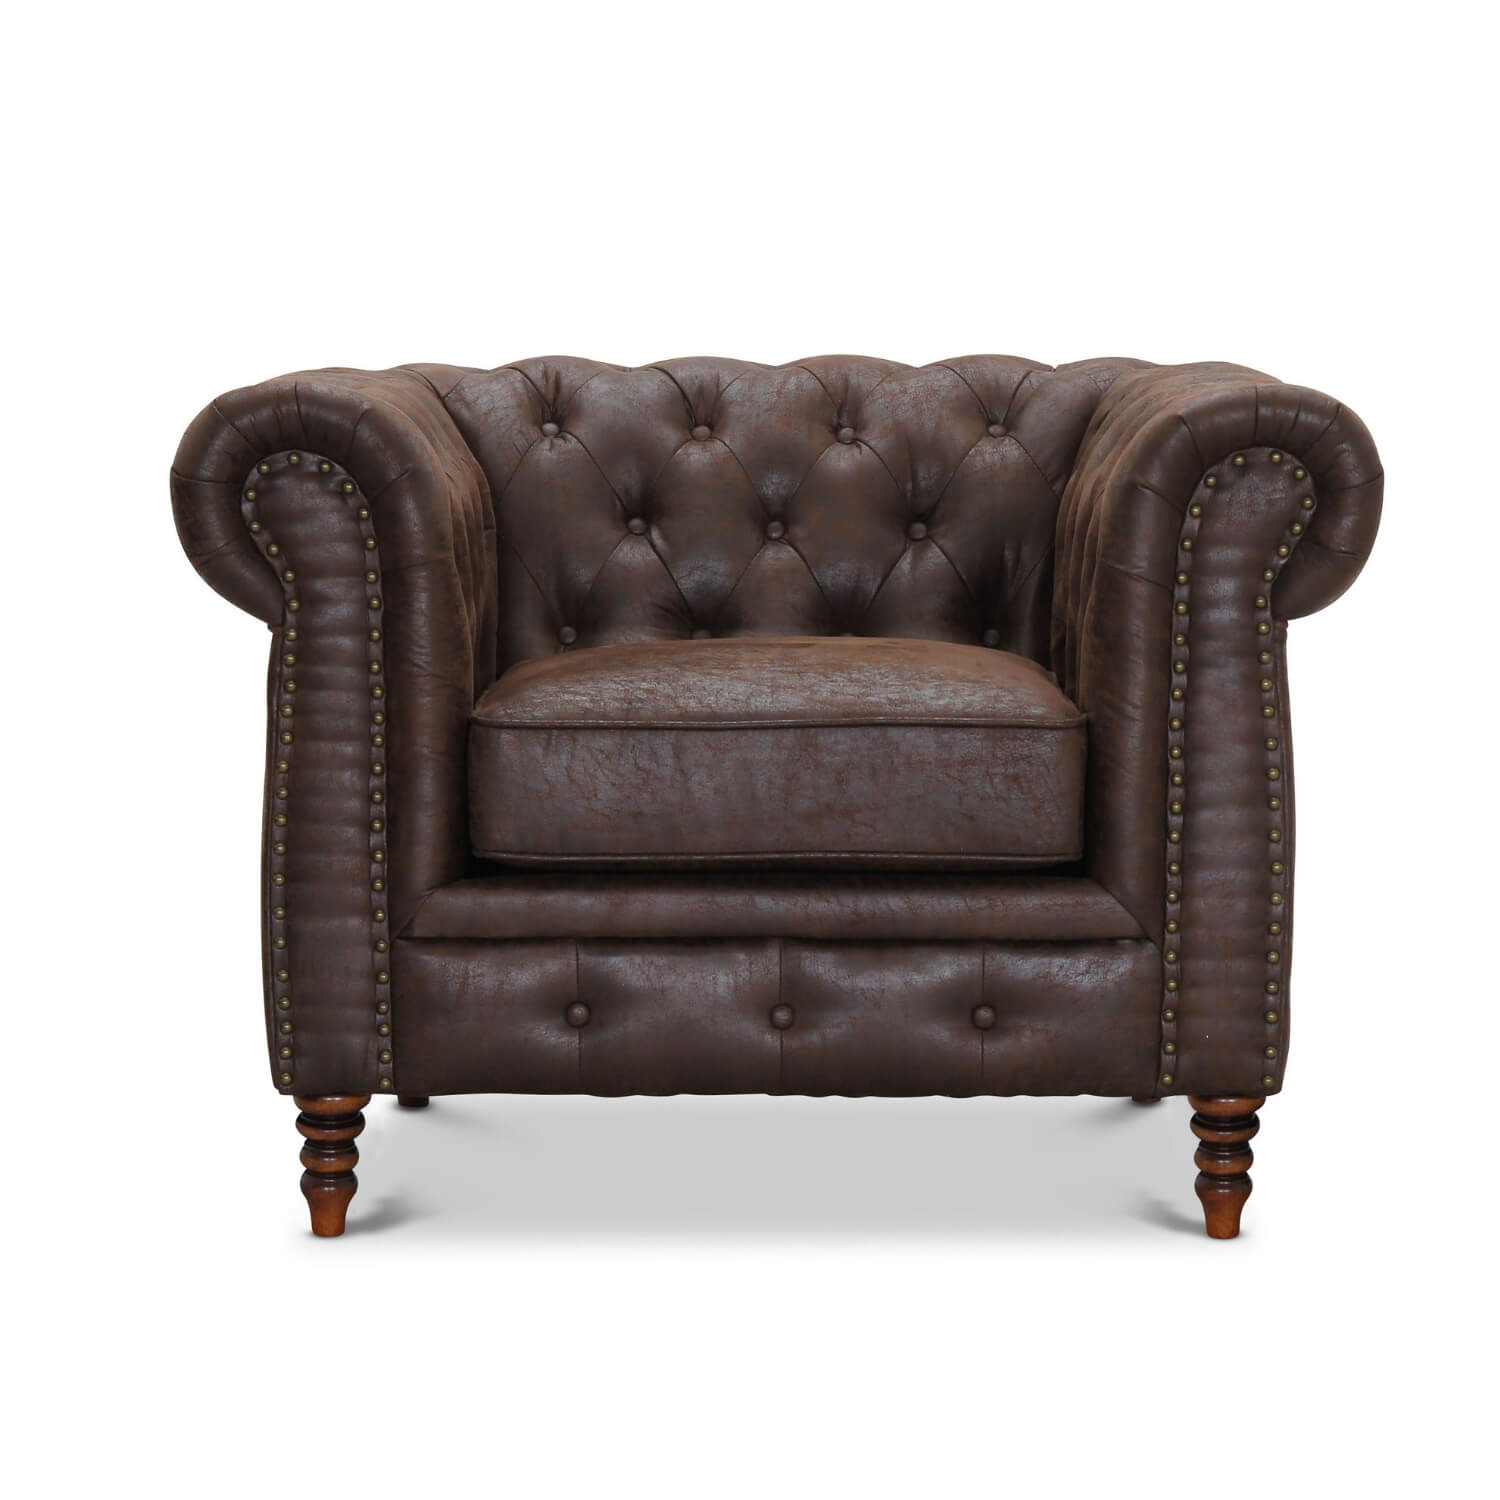 Image of   Cambridge chesterfield lænestol - brun vintagelook